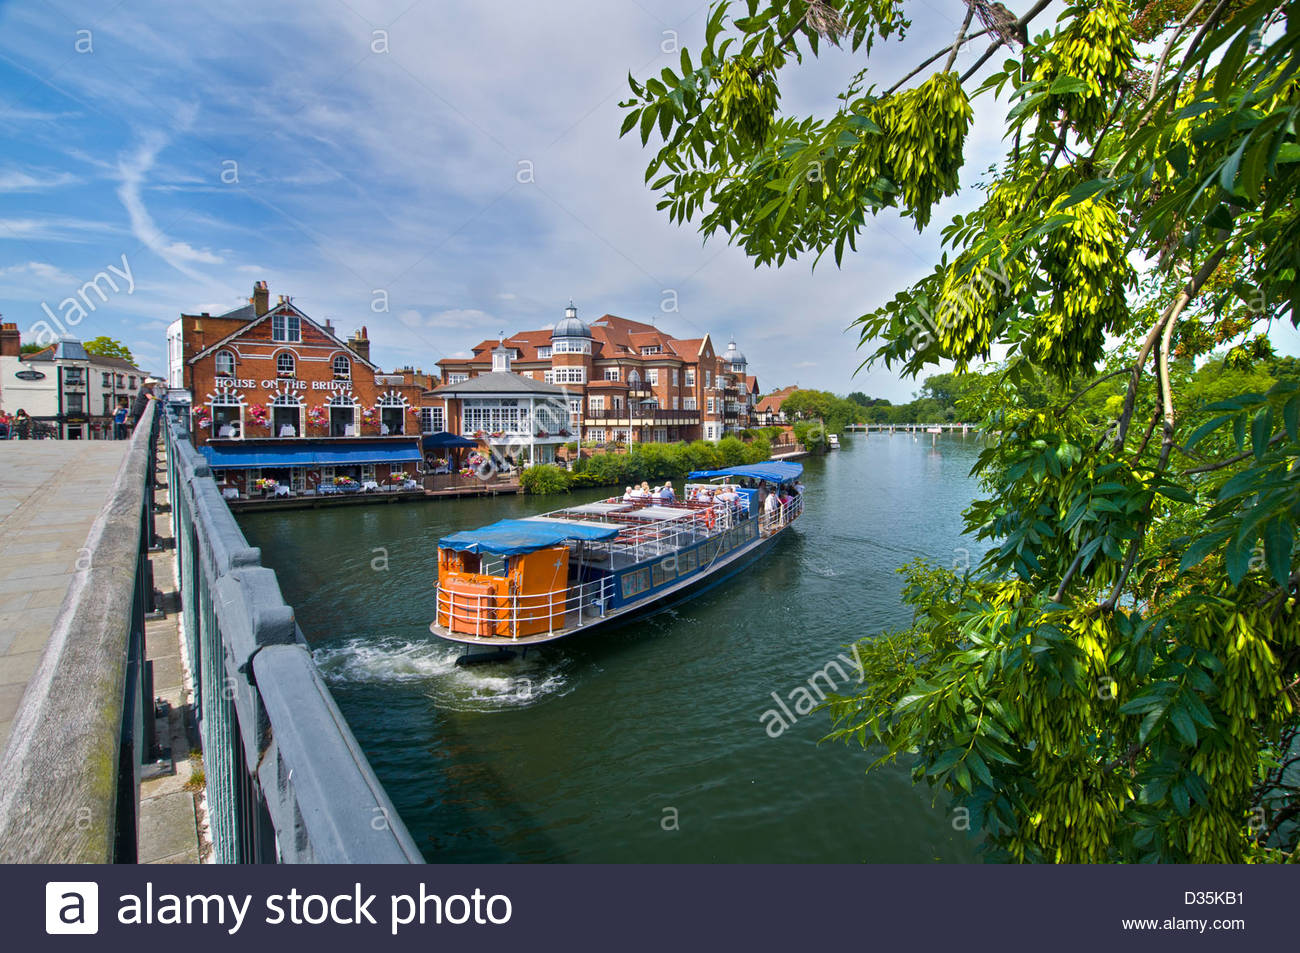 River Thames cruise boat mooring at Windsor Berkshire with village of Eaton behind UK - Stock Image